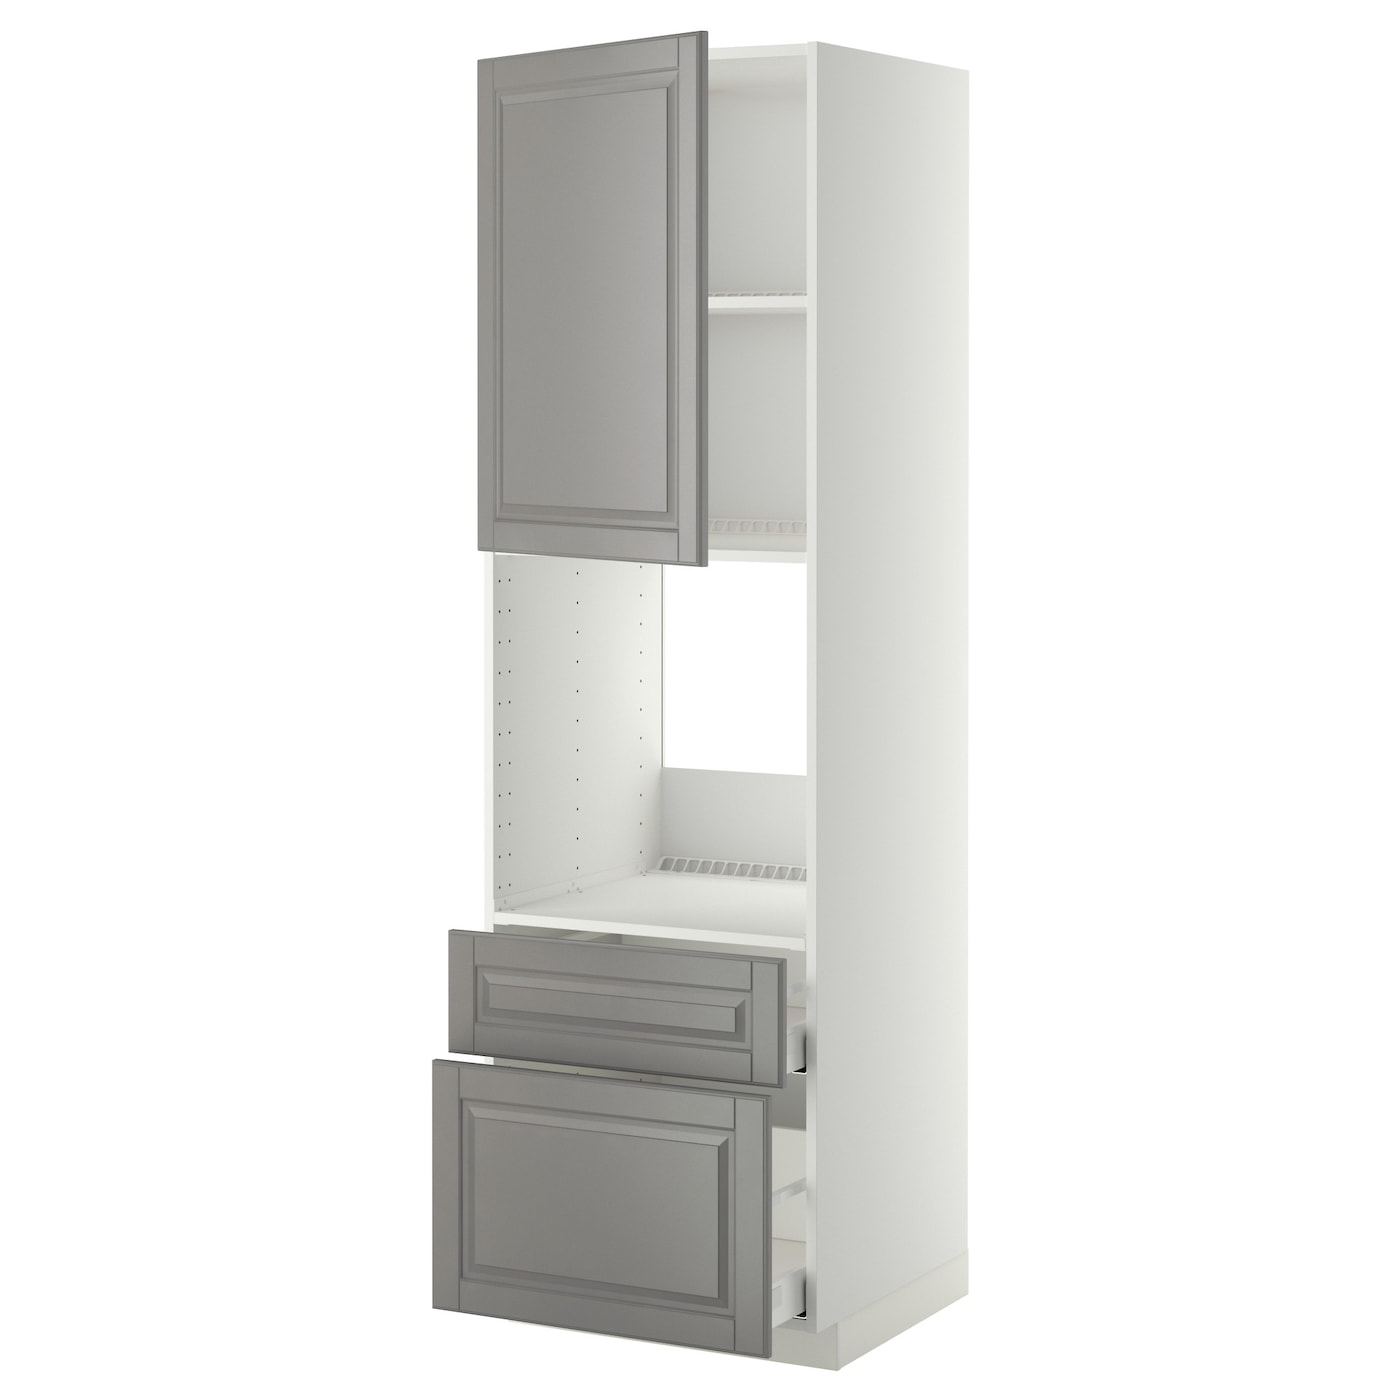 metod maximera armoire pour four porte 2 tiroirs blanc. Black Bedroom Furniture Sets. Home Design Ideas